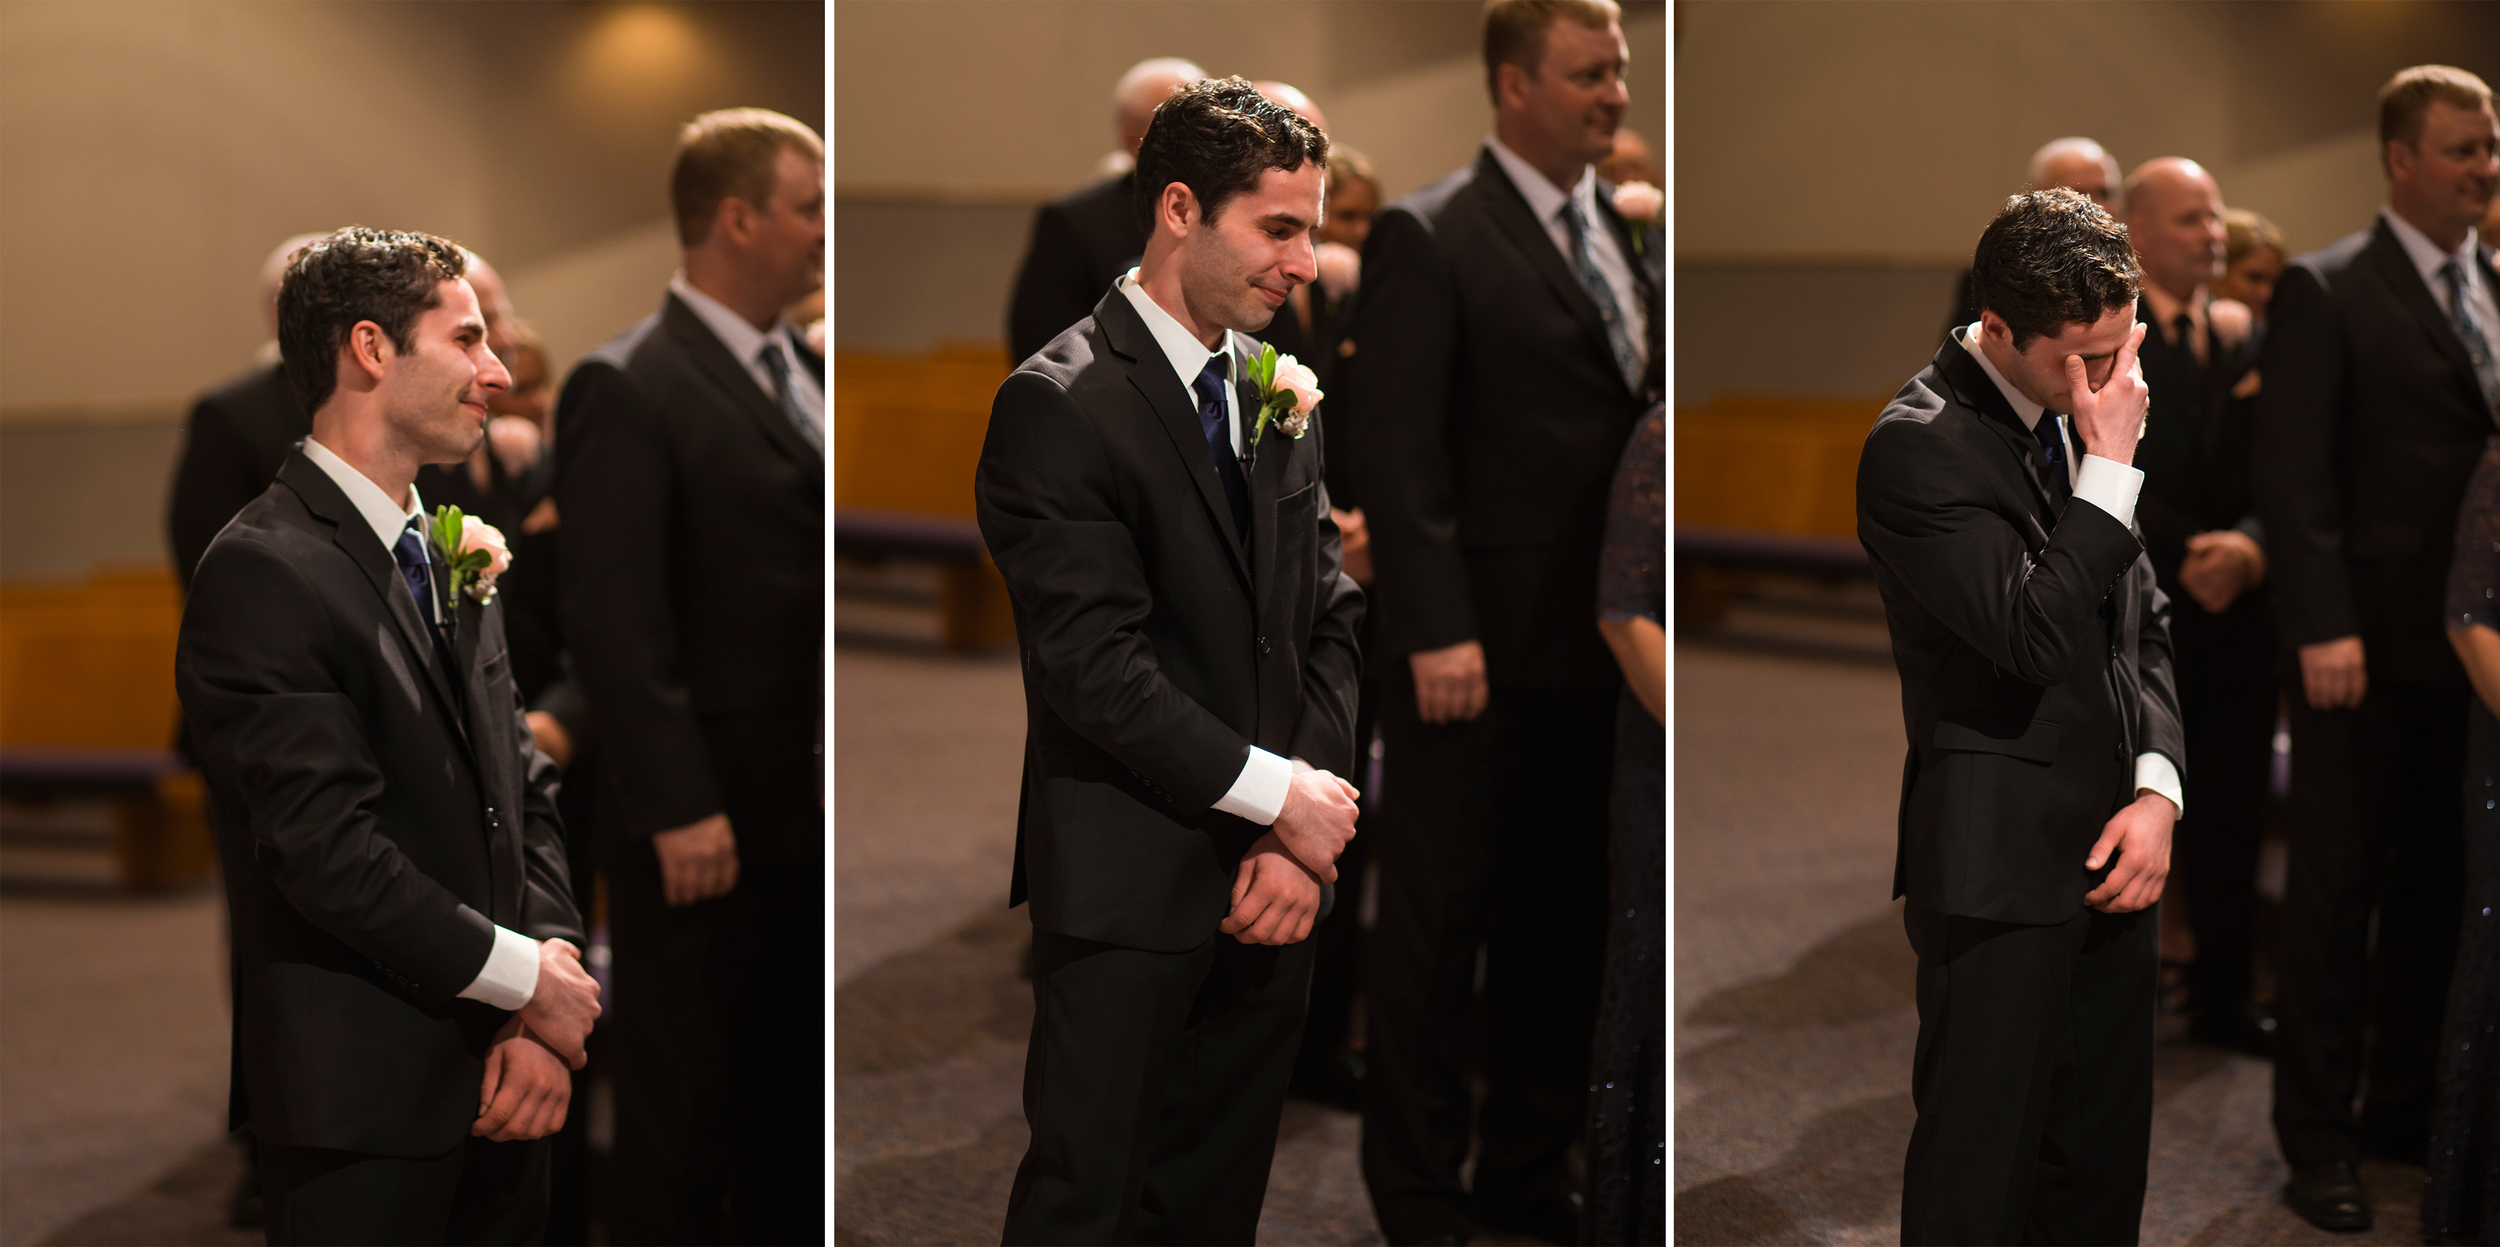 Congratulations, Matt. You're the first groom to make me cry when I'm trying to take pictures. And now I'm going to make everyone else cry, too!